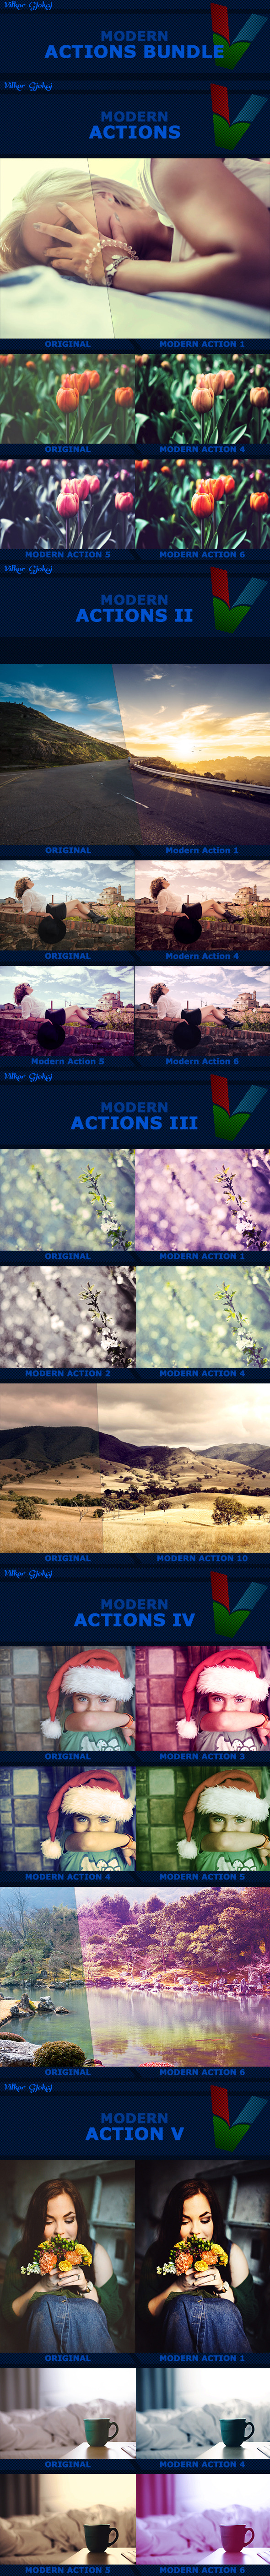 200 Modern Actions Bundle - Photo Effects Actions